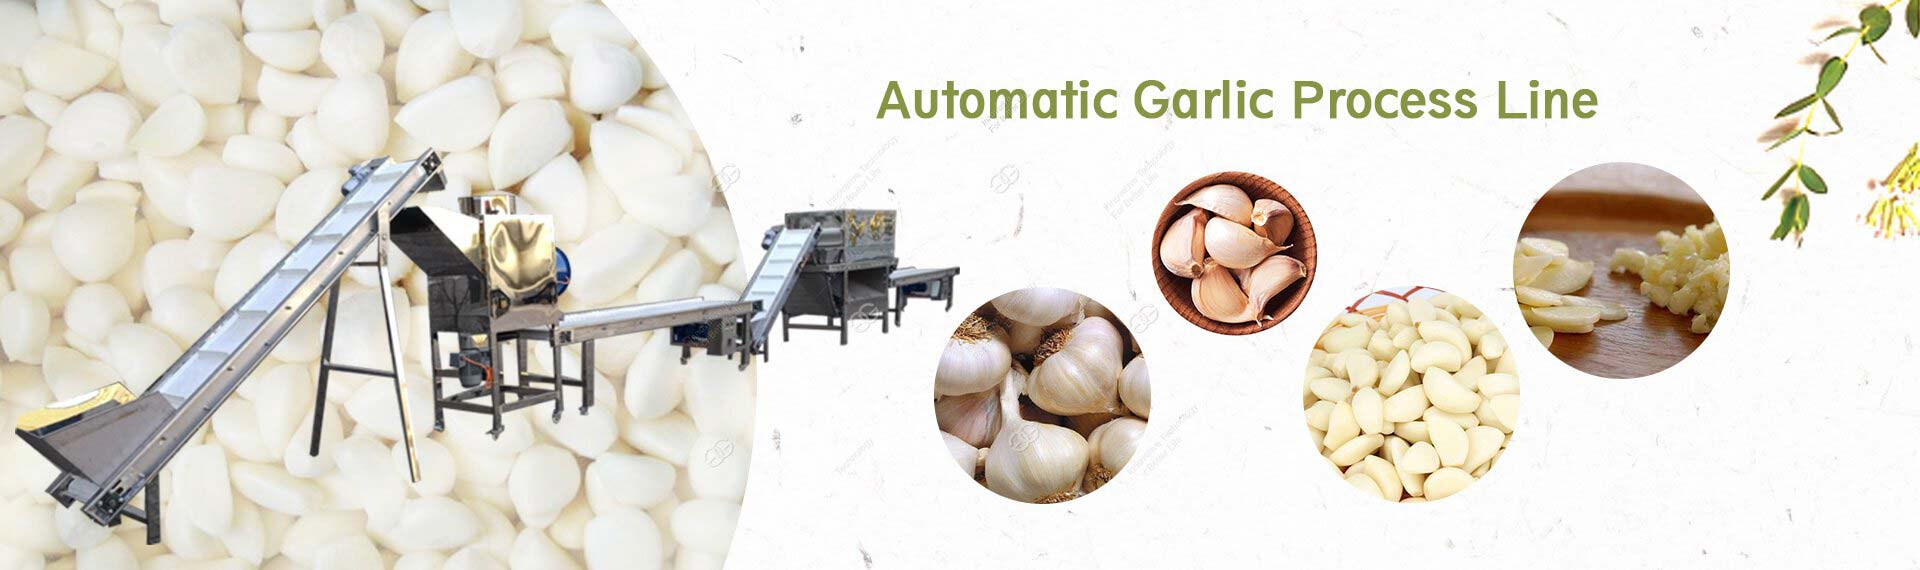 Automatic Garlic Process Machine